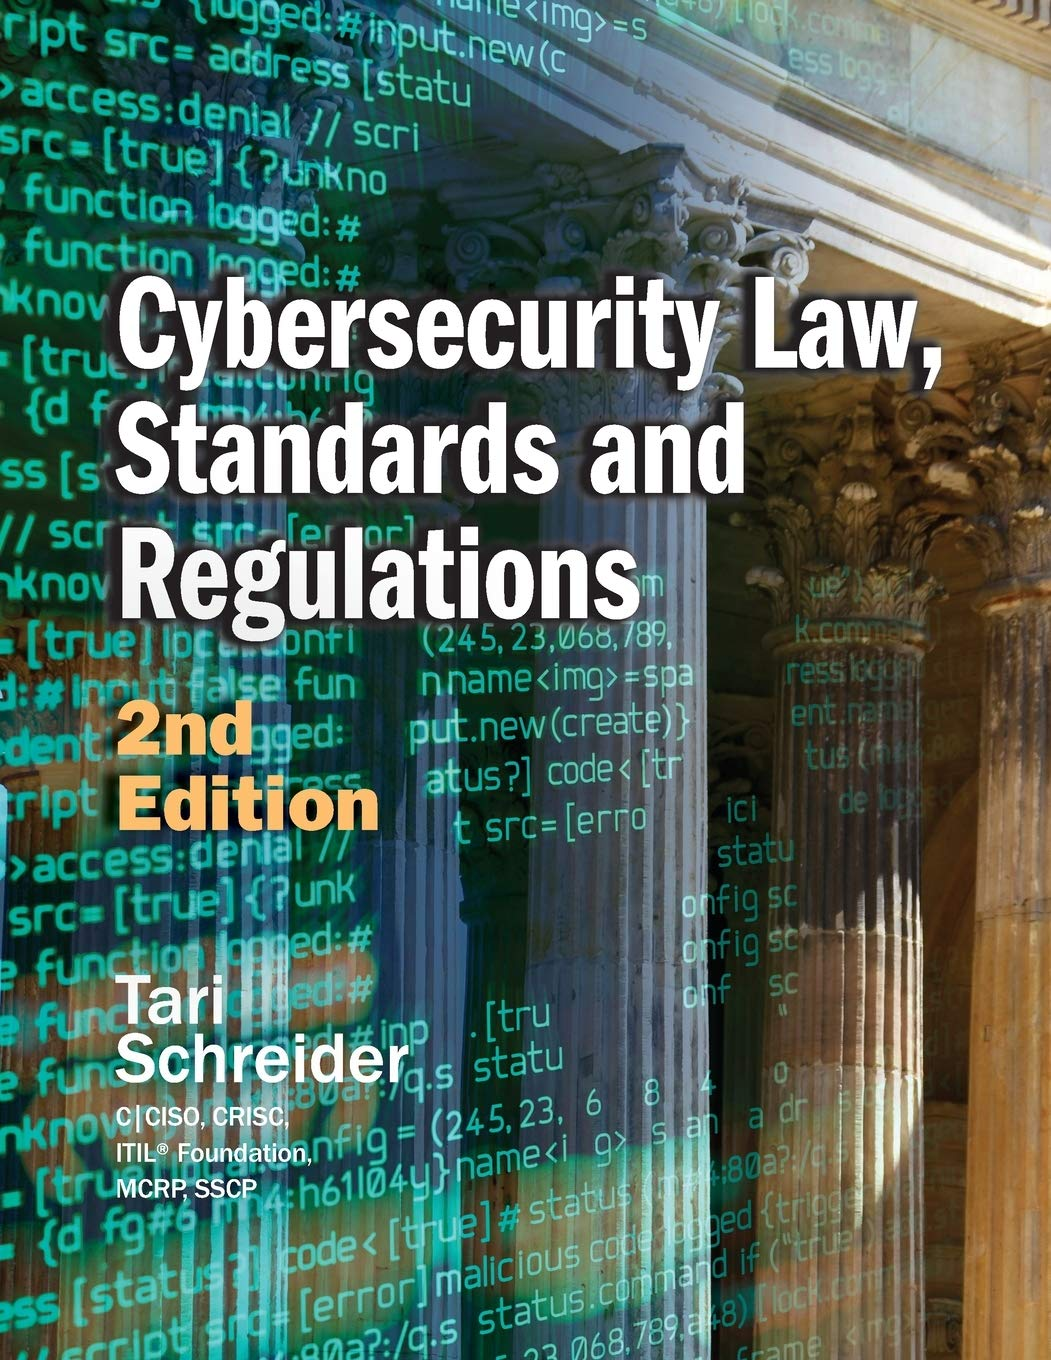 Image OfCybersecurity Law, Standards And Regulations: 2nd Edition